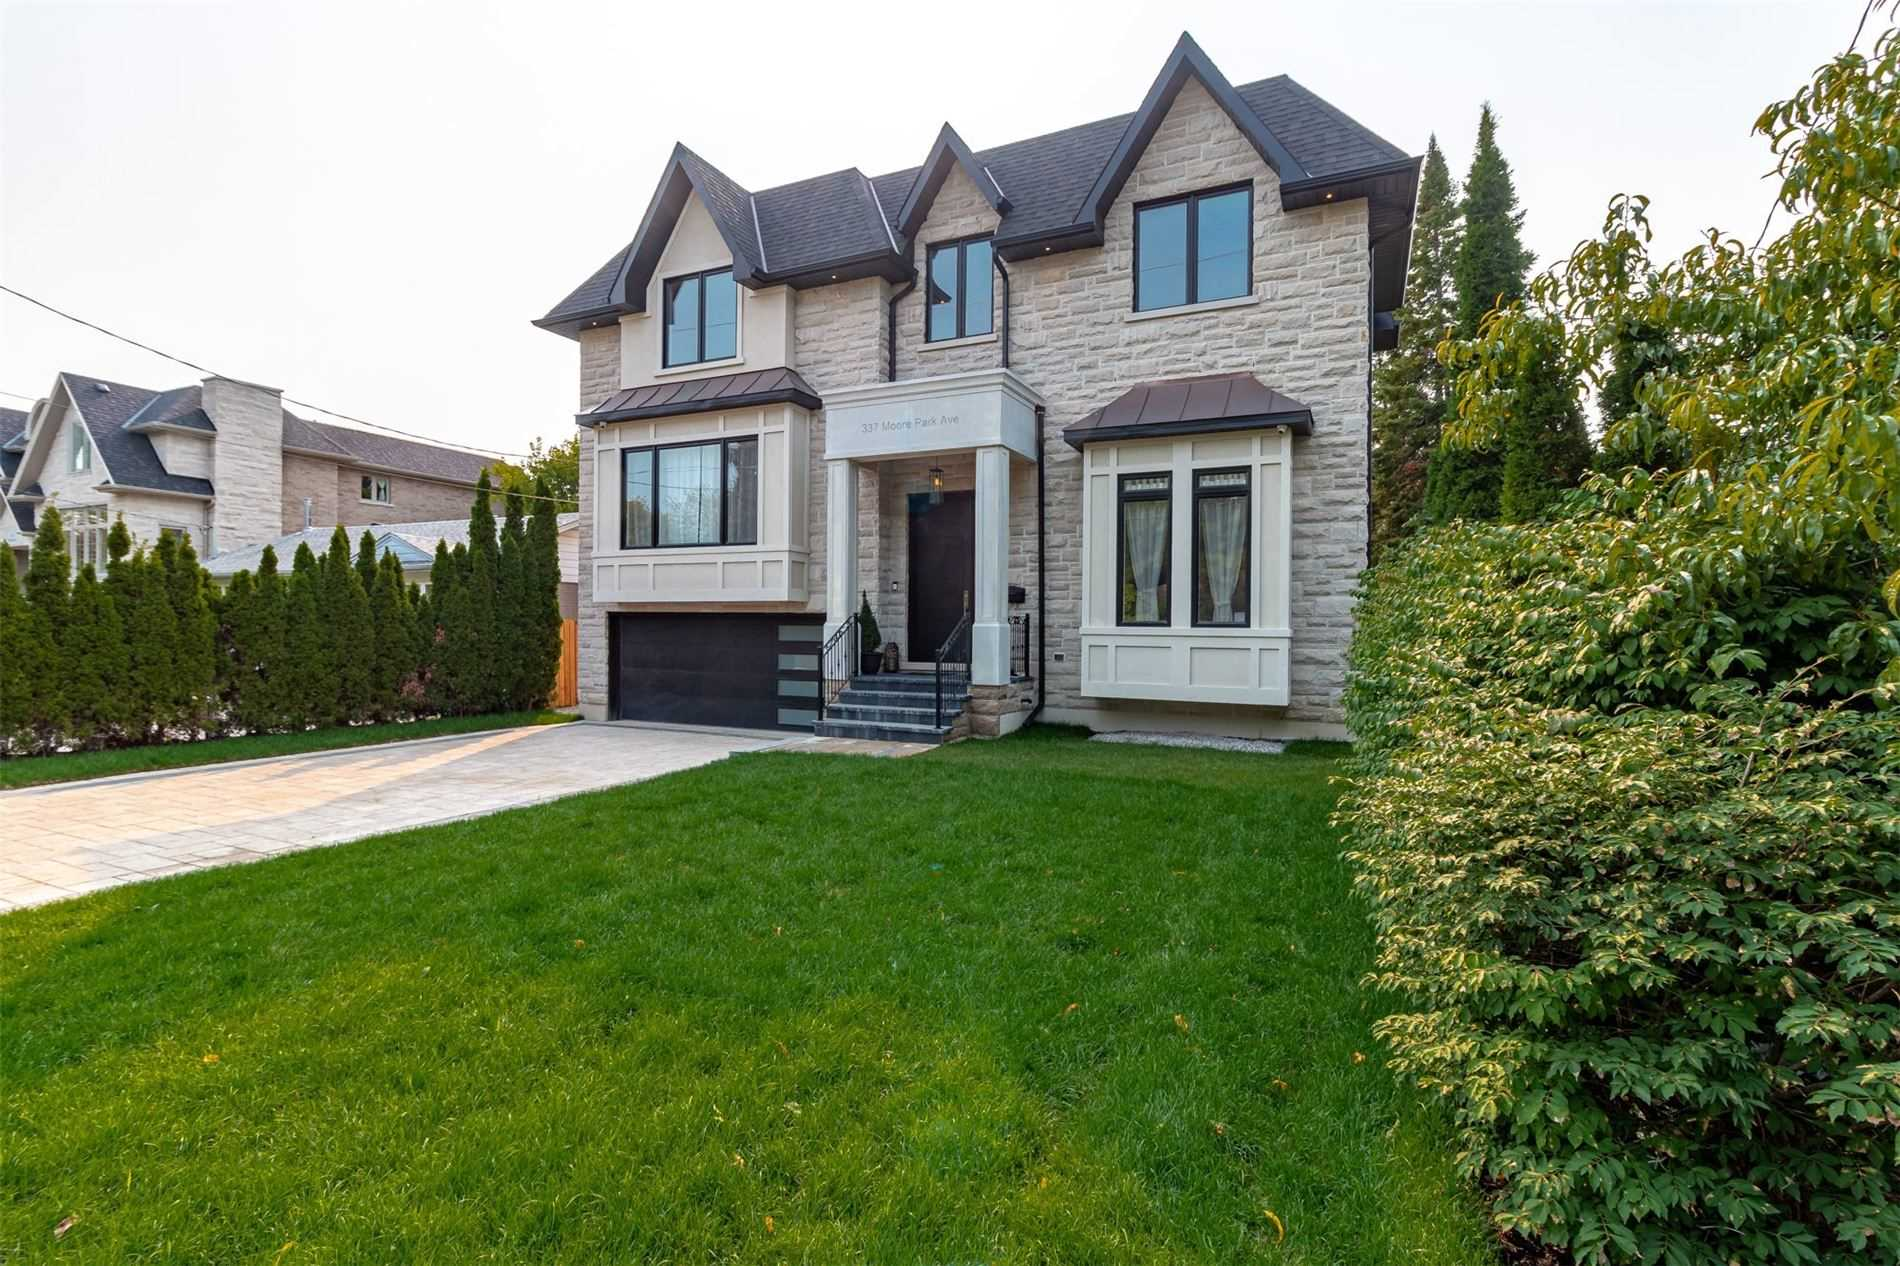 337 Moore Park Ave, Toronto, Ontario M2R2R5, 5 Bedrooms Bedrooms, 12 Rooms Rooms,8 BathroomsBathrooms,Detached,For Sale,Moore Park,C4922576